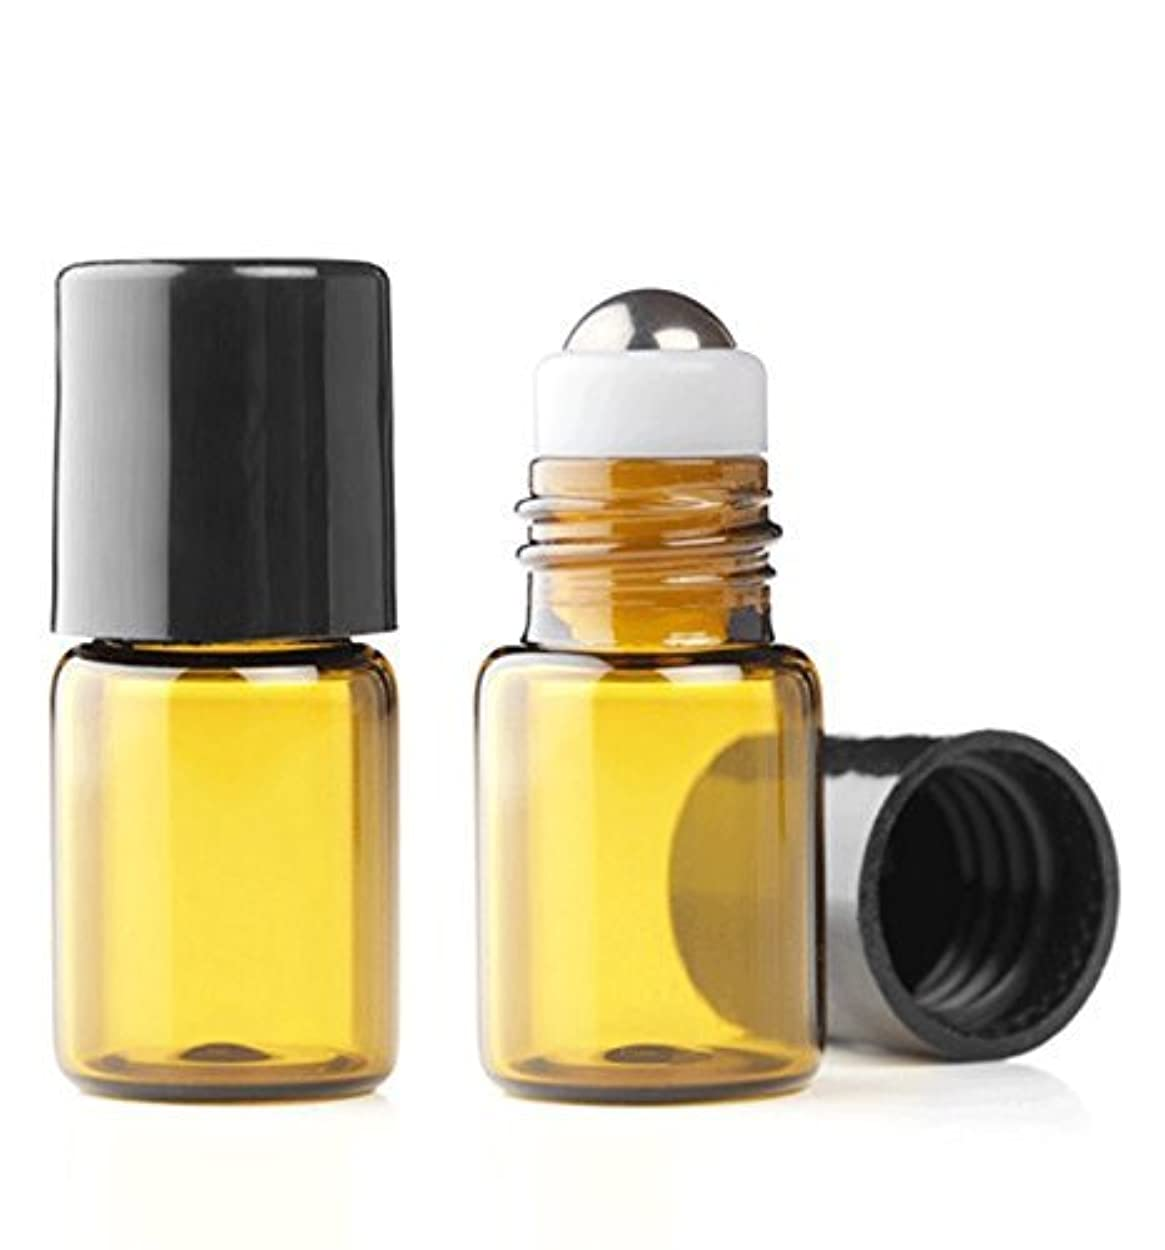 Grand Parfums Empty 2ml Amber Glass Micro Mini Rollon Dram Glass Bottles with Metal Roller Balls - Refillable...